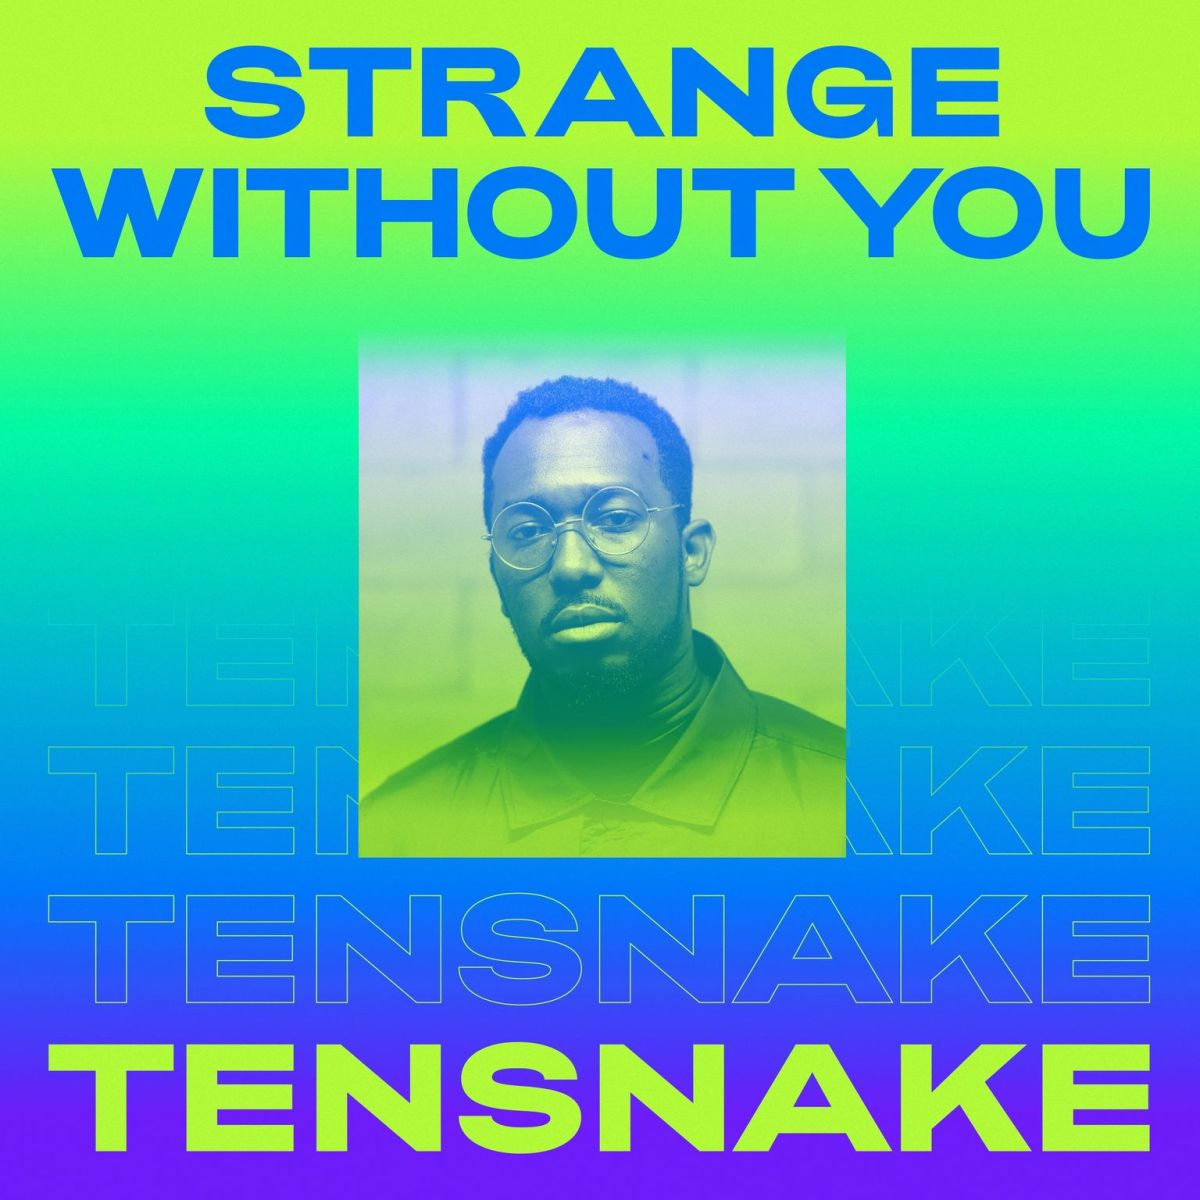 TENSNAKE DELIVERS FOURTH SINGLE OF FORTHCOMING L.A. ALBUM ...